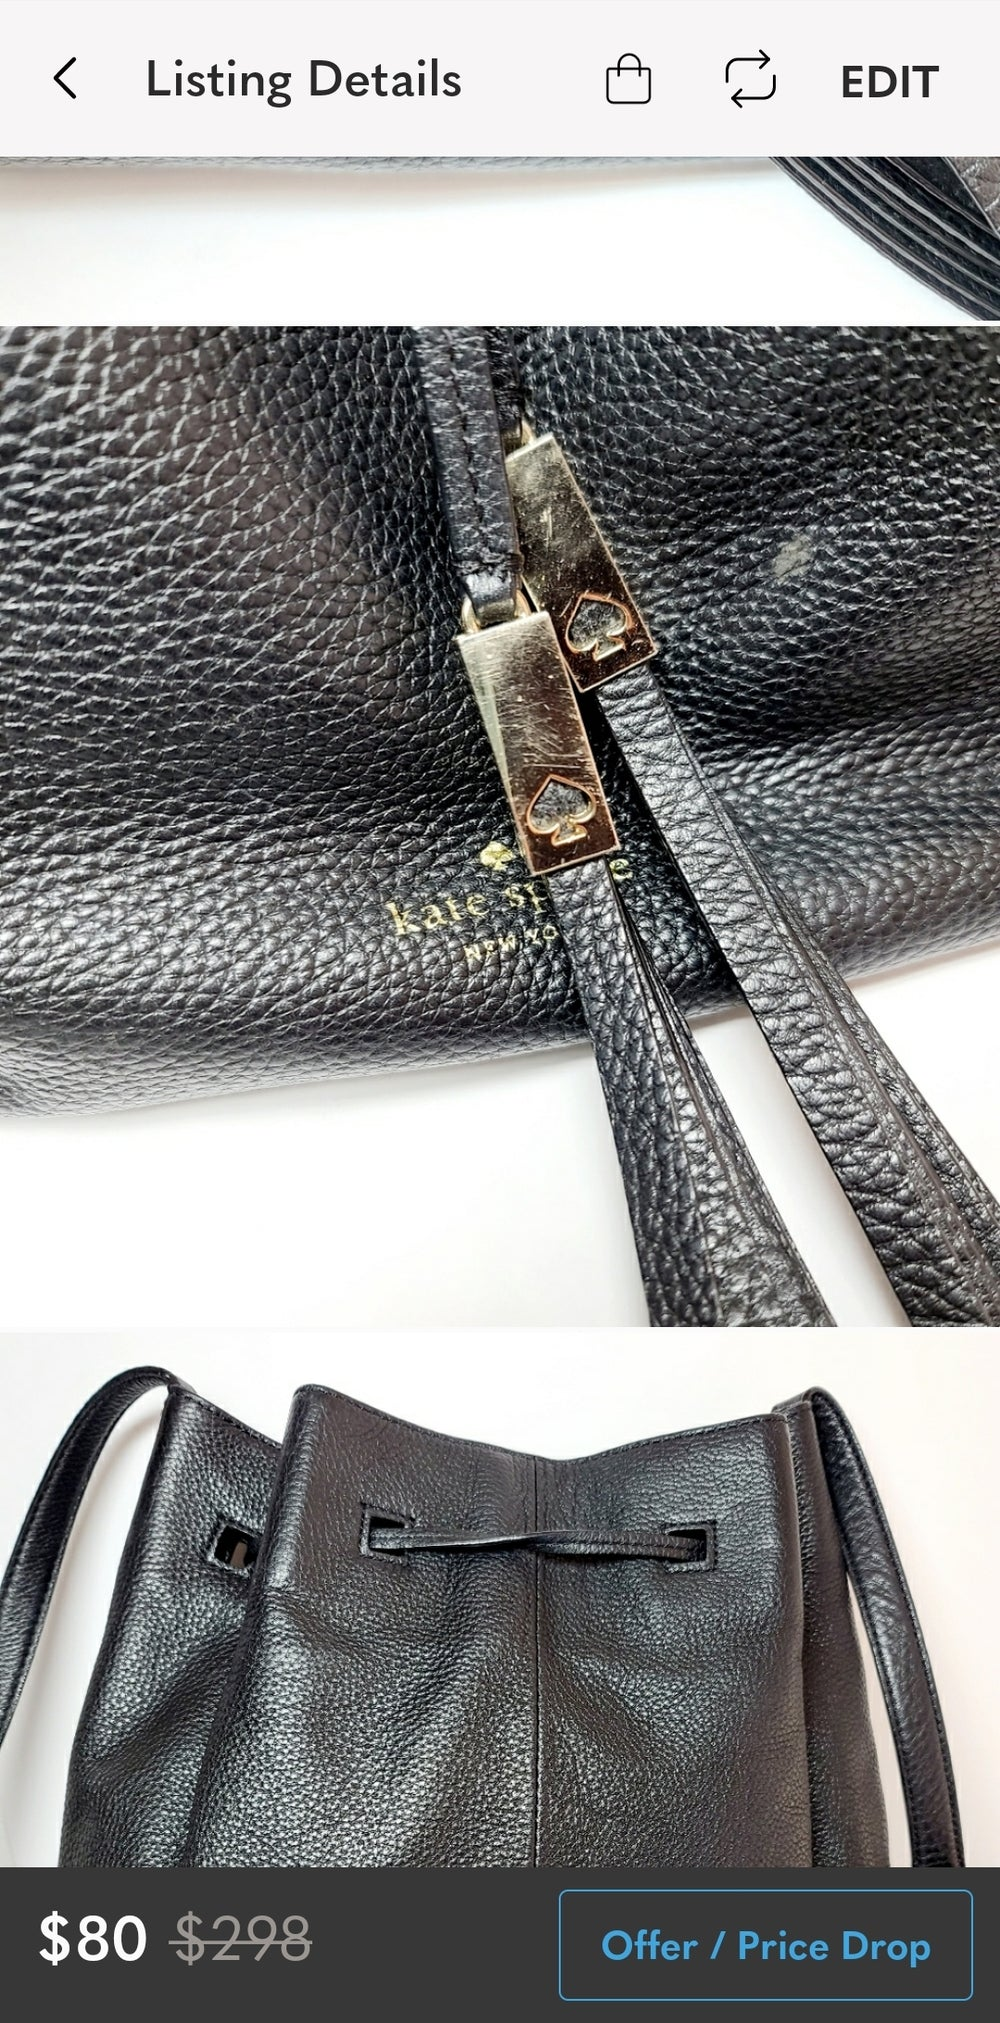 Kate Spade Black Pebbled Leather Bucket Bag